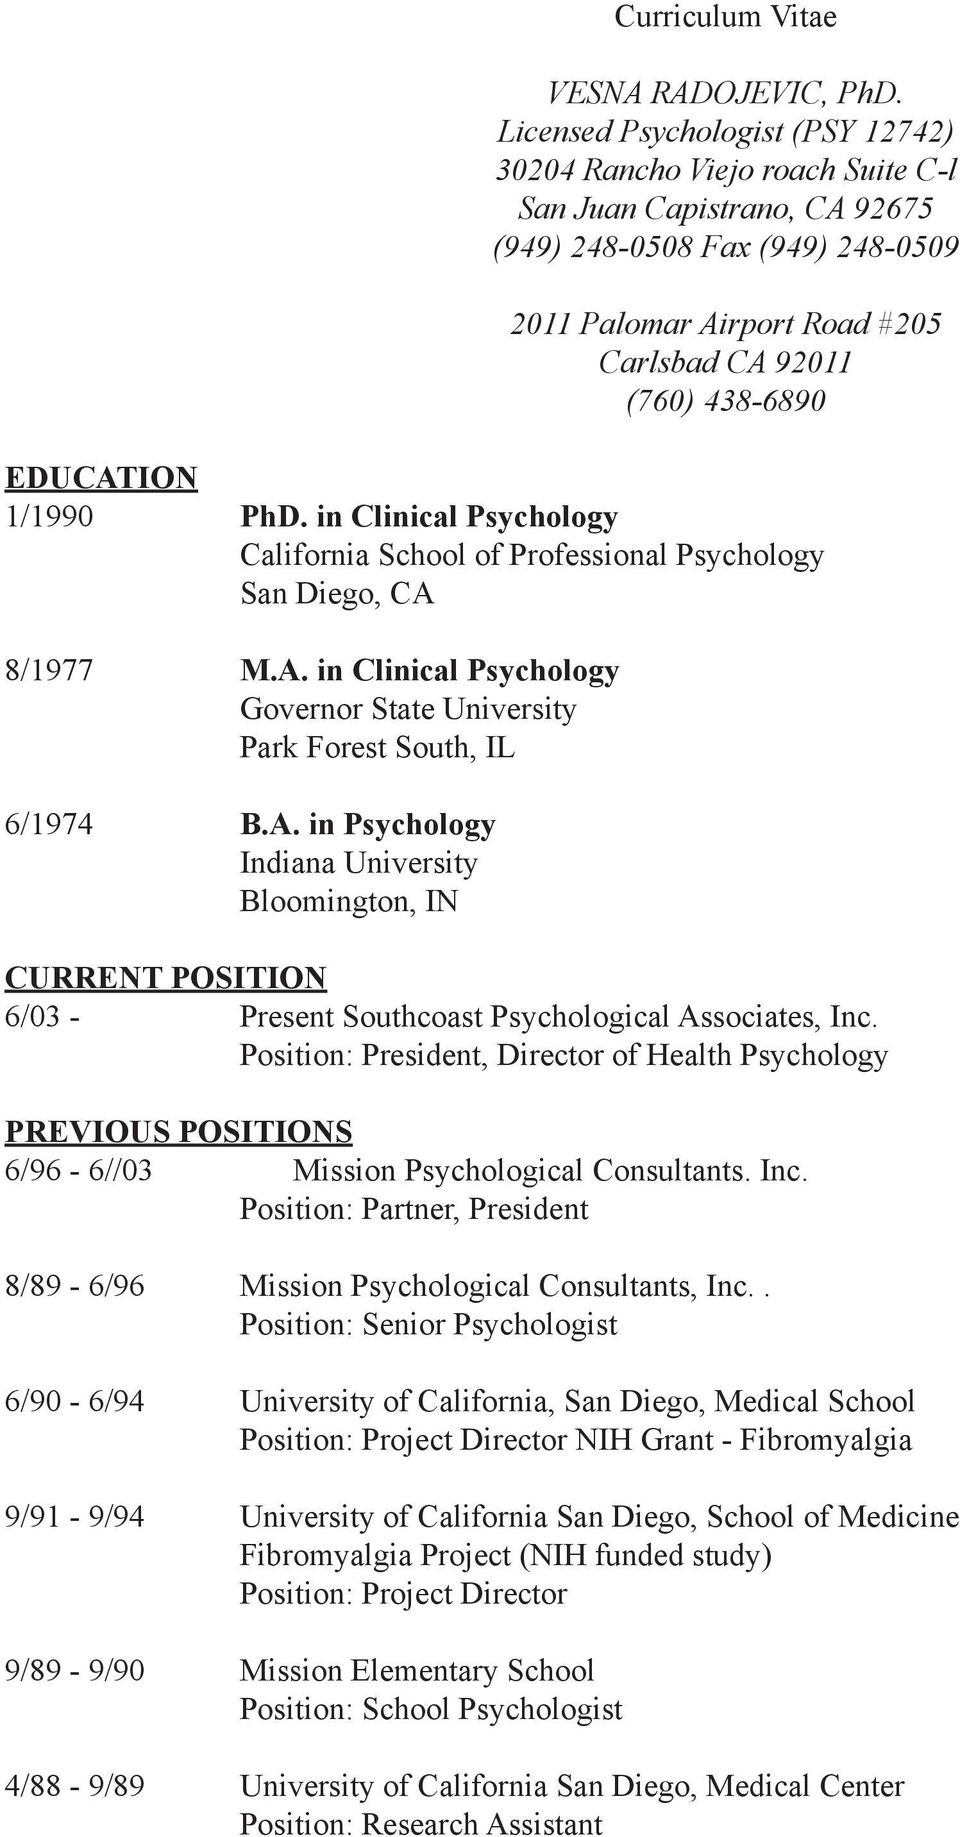 EDUCATION 1/1990 PhD. in Clinical Psychology California School of Professional Psychology San Diego, CA 8/1977 M.A. in Clinical Psychology Governor State University Park Forest South, IL 6/1974 B.A. in Psychology Indiana University Bloomington, IN CURRENT POSITION 6/03 - Present Southcoast Psychological Associates, Inc.